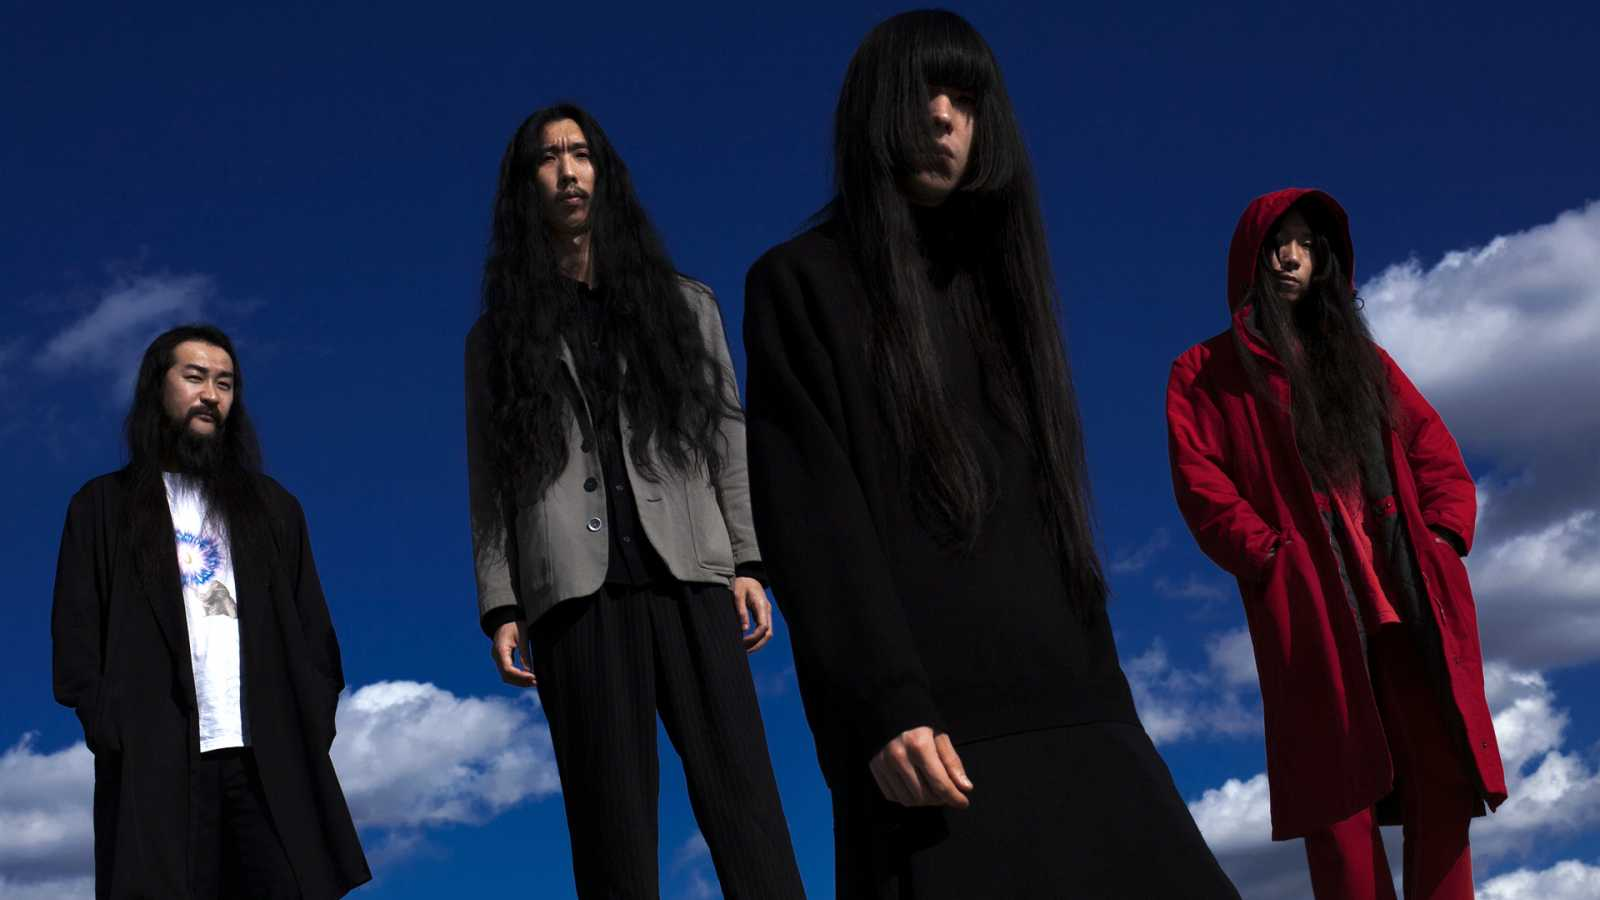 Bo Ningen – Sudden Fictions